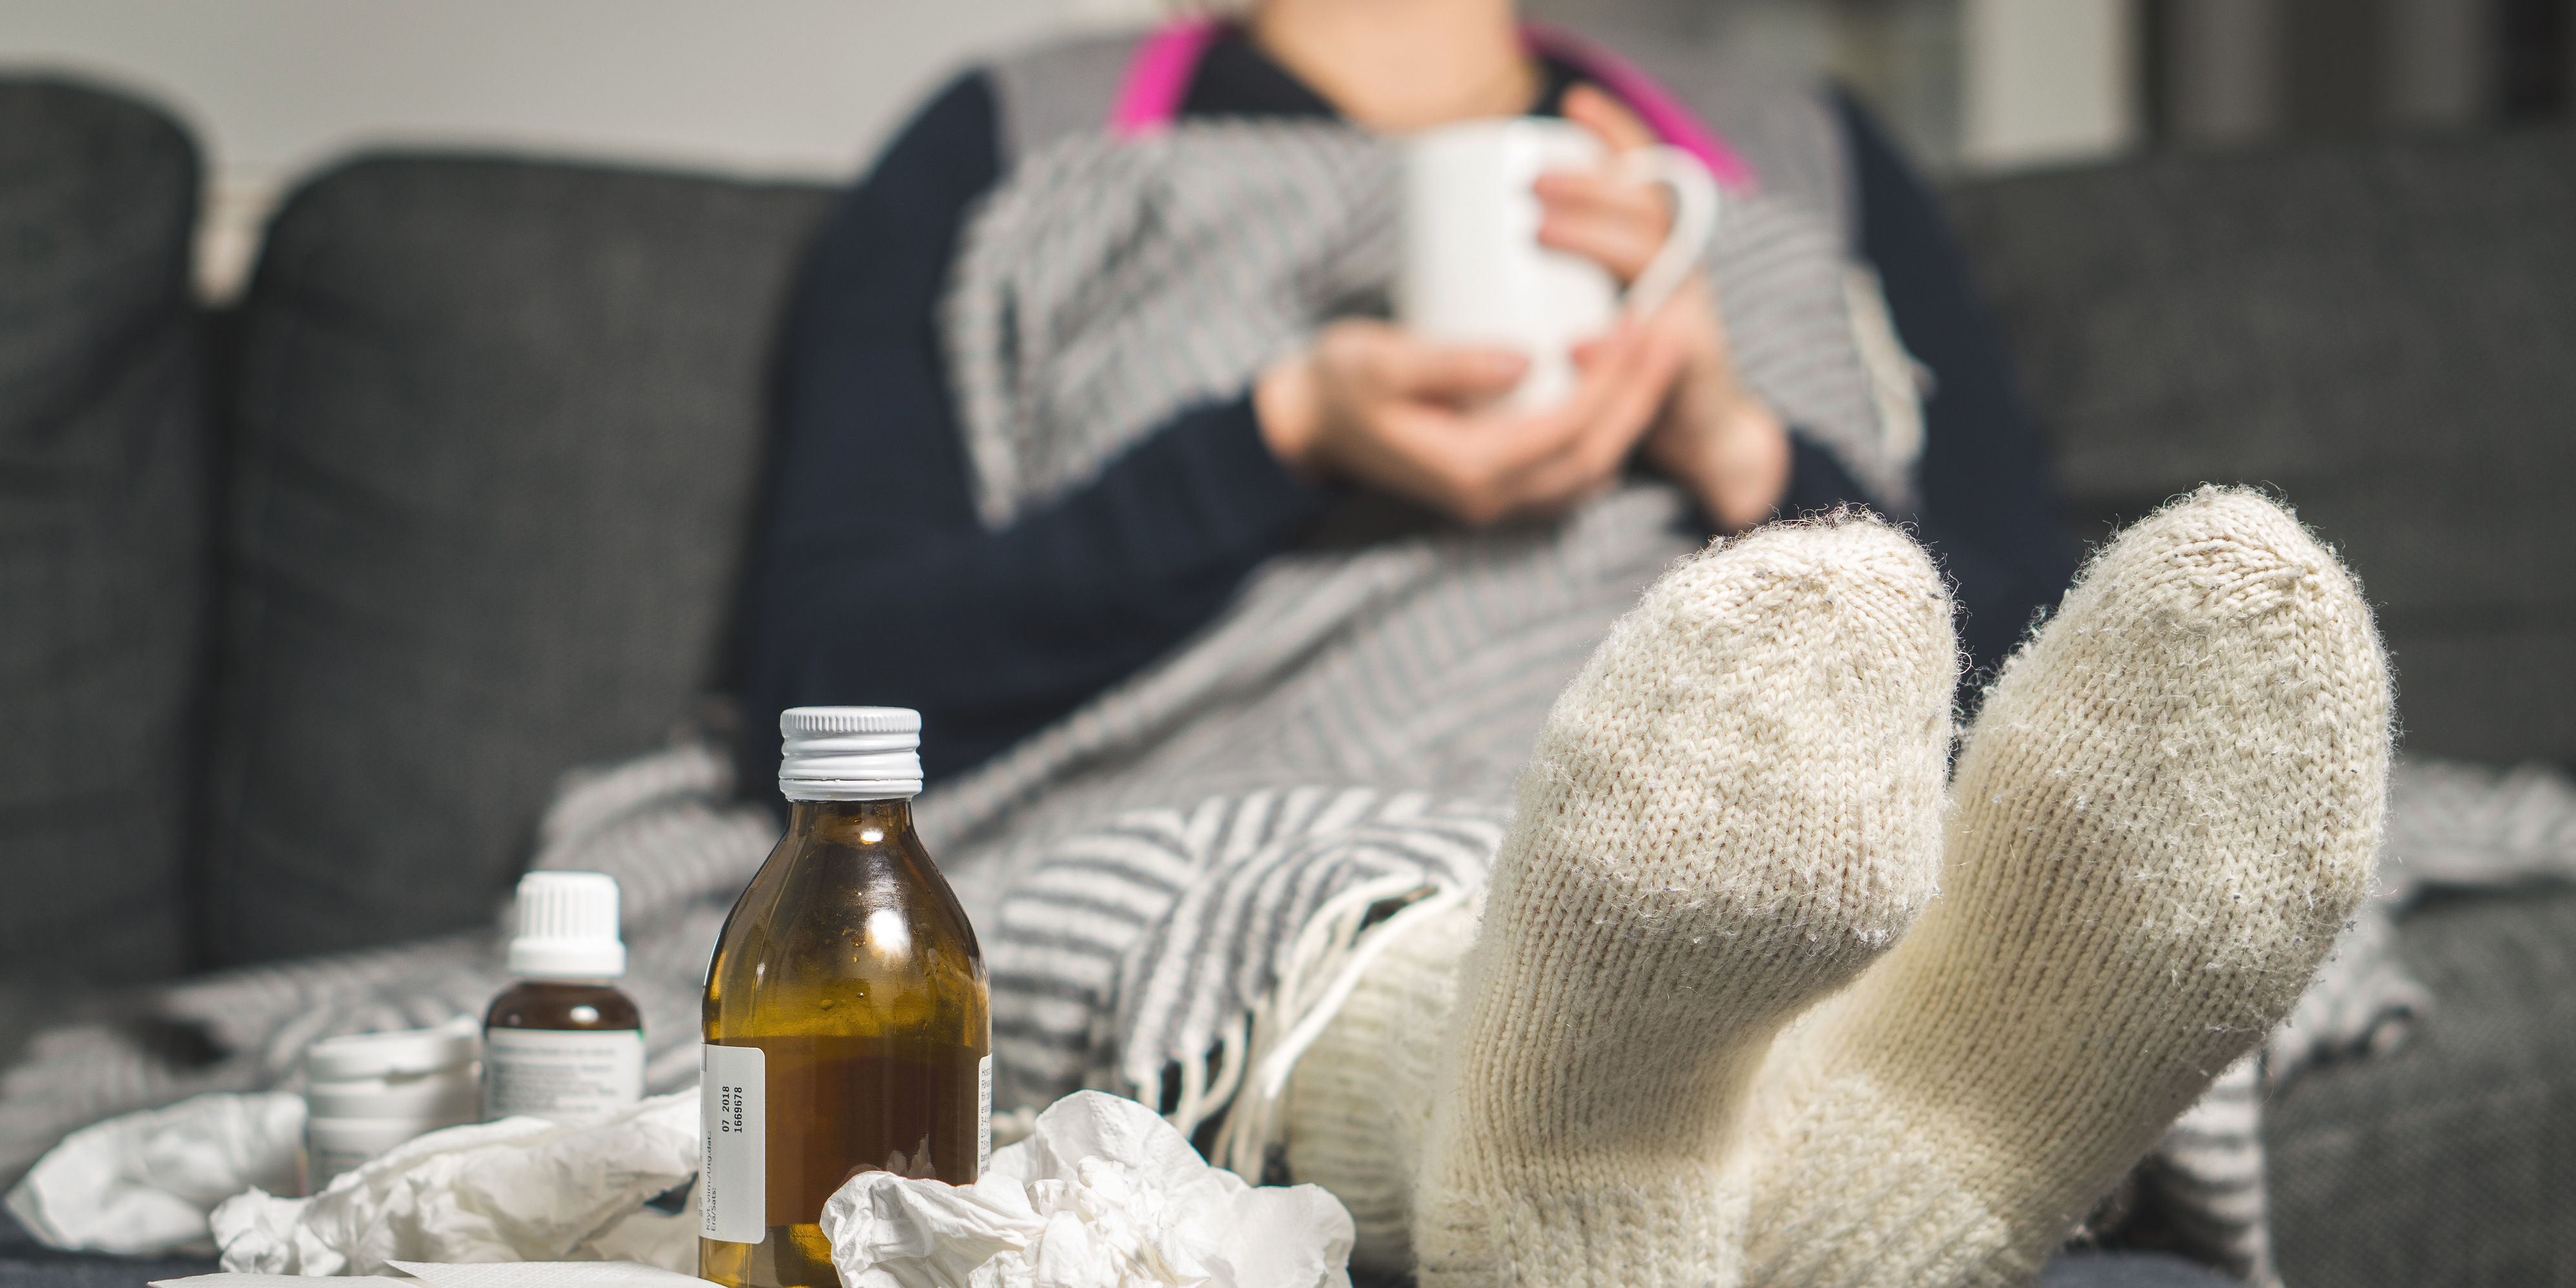 Cold medicine and sick woman drinking hot beverage to get well from flu, fever and virus. Dirty paper towels and tissues on table. Ill person wearing warm woolen stocking socks in winter.